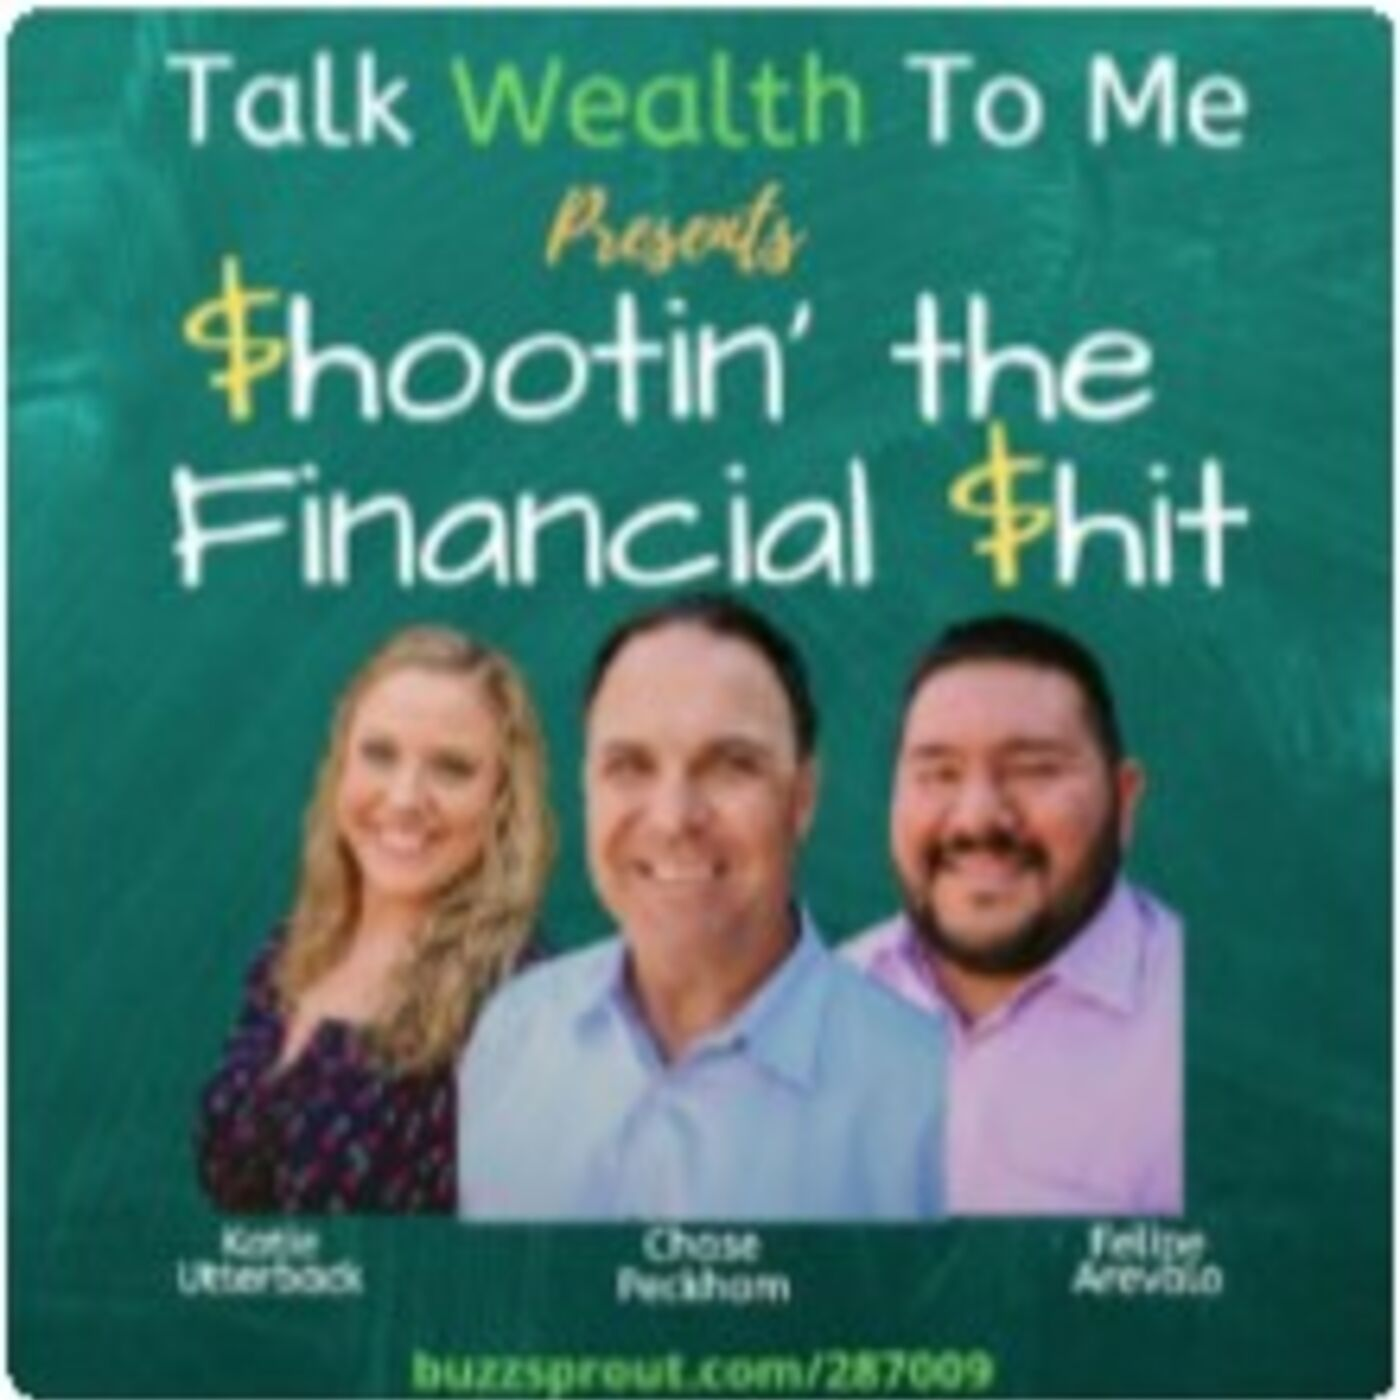 #086 Shootin The Financial $h!t: Club and Travel Sports: Big Business and Big chunk of $